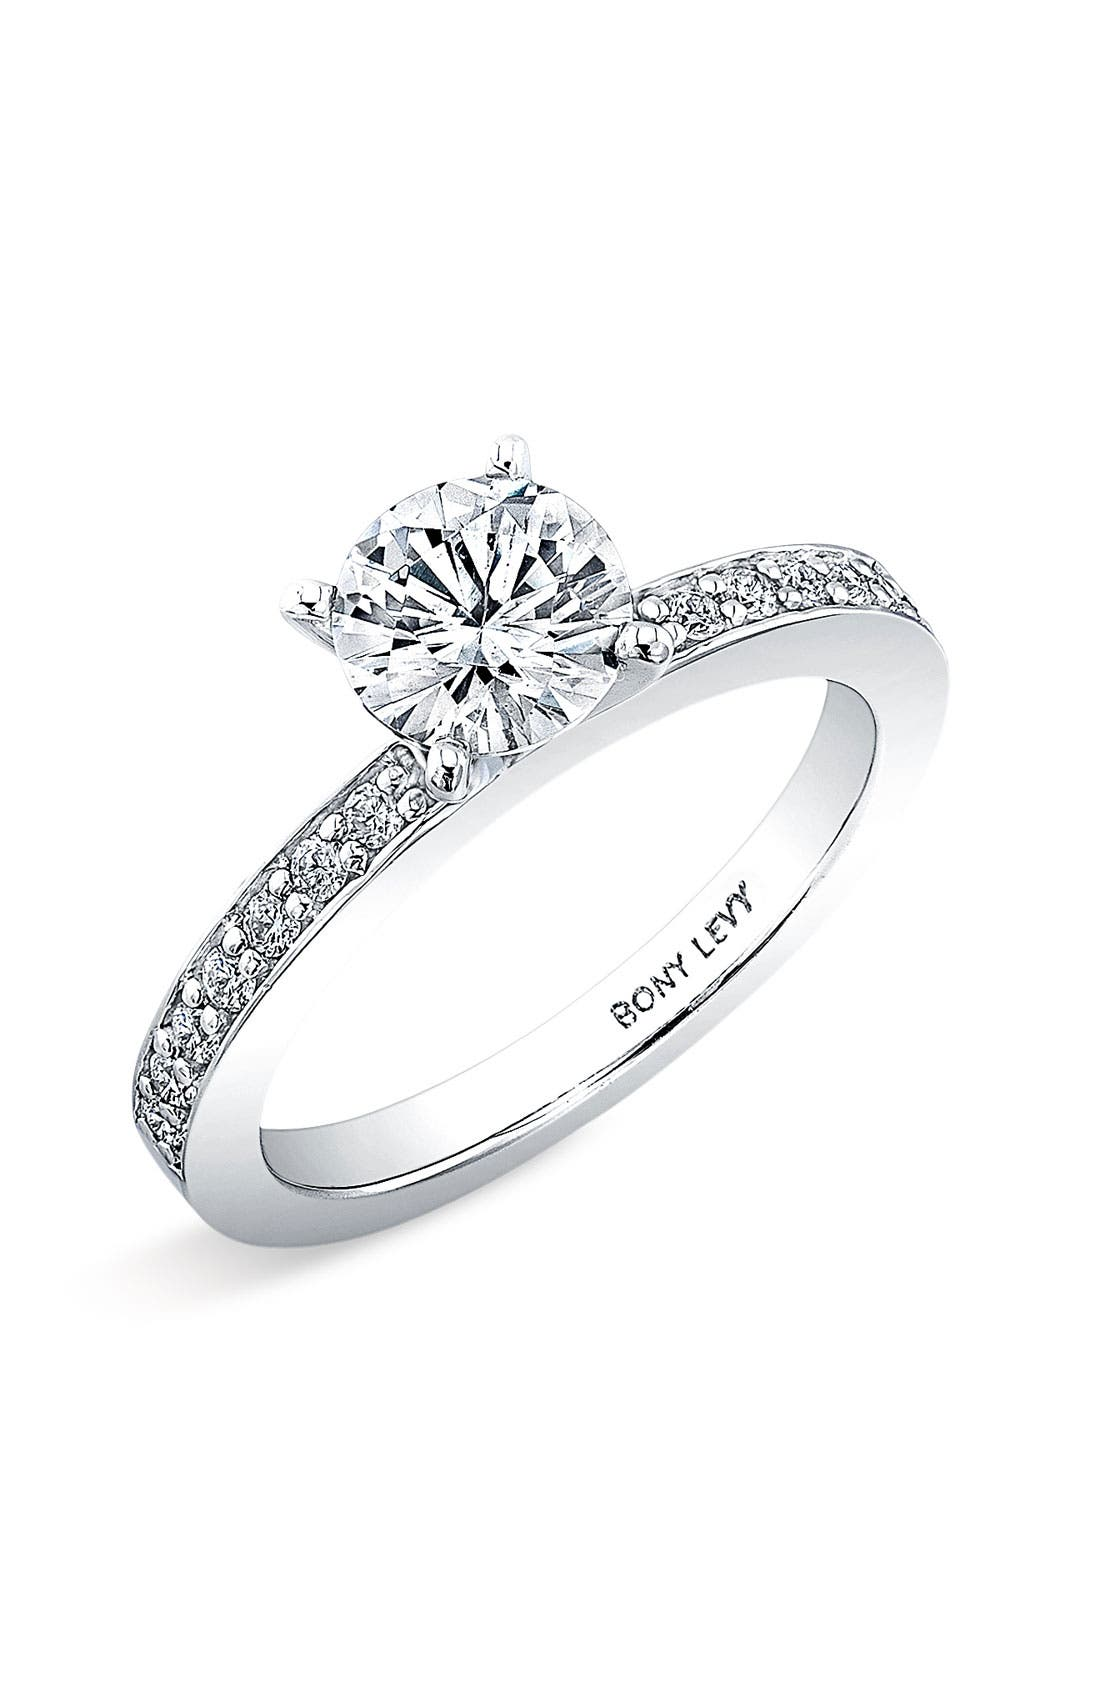 Alternate Image 1 Selected - Bony Levy Channel Set Diamond Engagement Ring Setting (Nordstrom Exclusive)